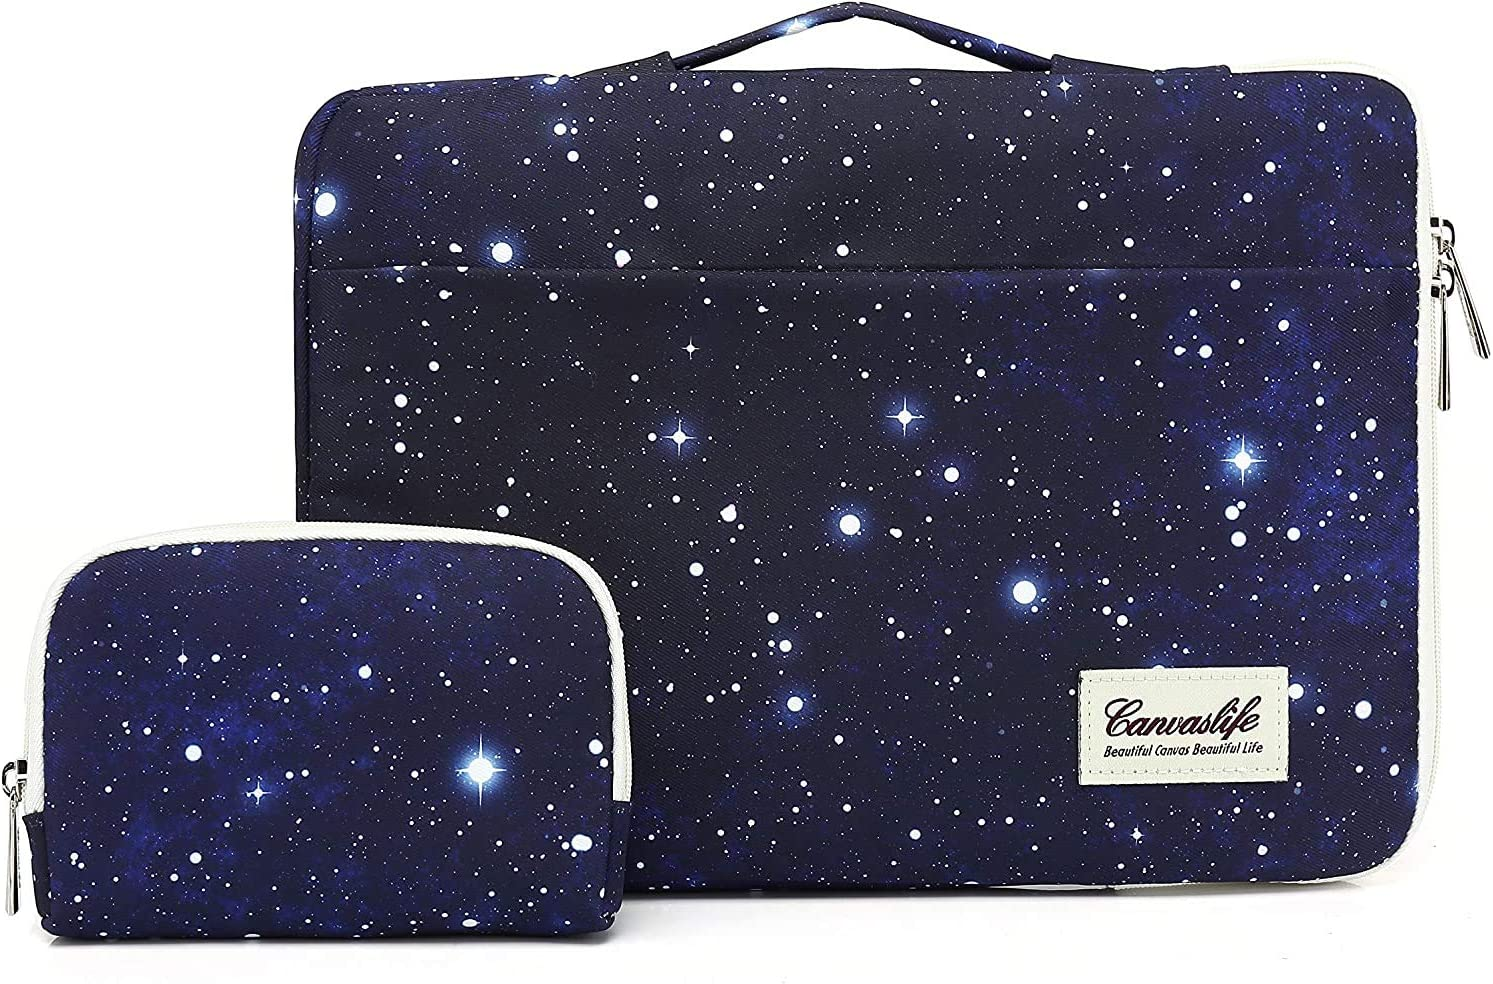 Canvaslife 15 inch Sapphire Blue Sky 360° Cushion Protective Waterproof Laptop Case Bag Sleeve with Handle for 15 inch-15.6 inch Laptop